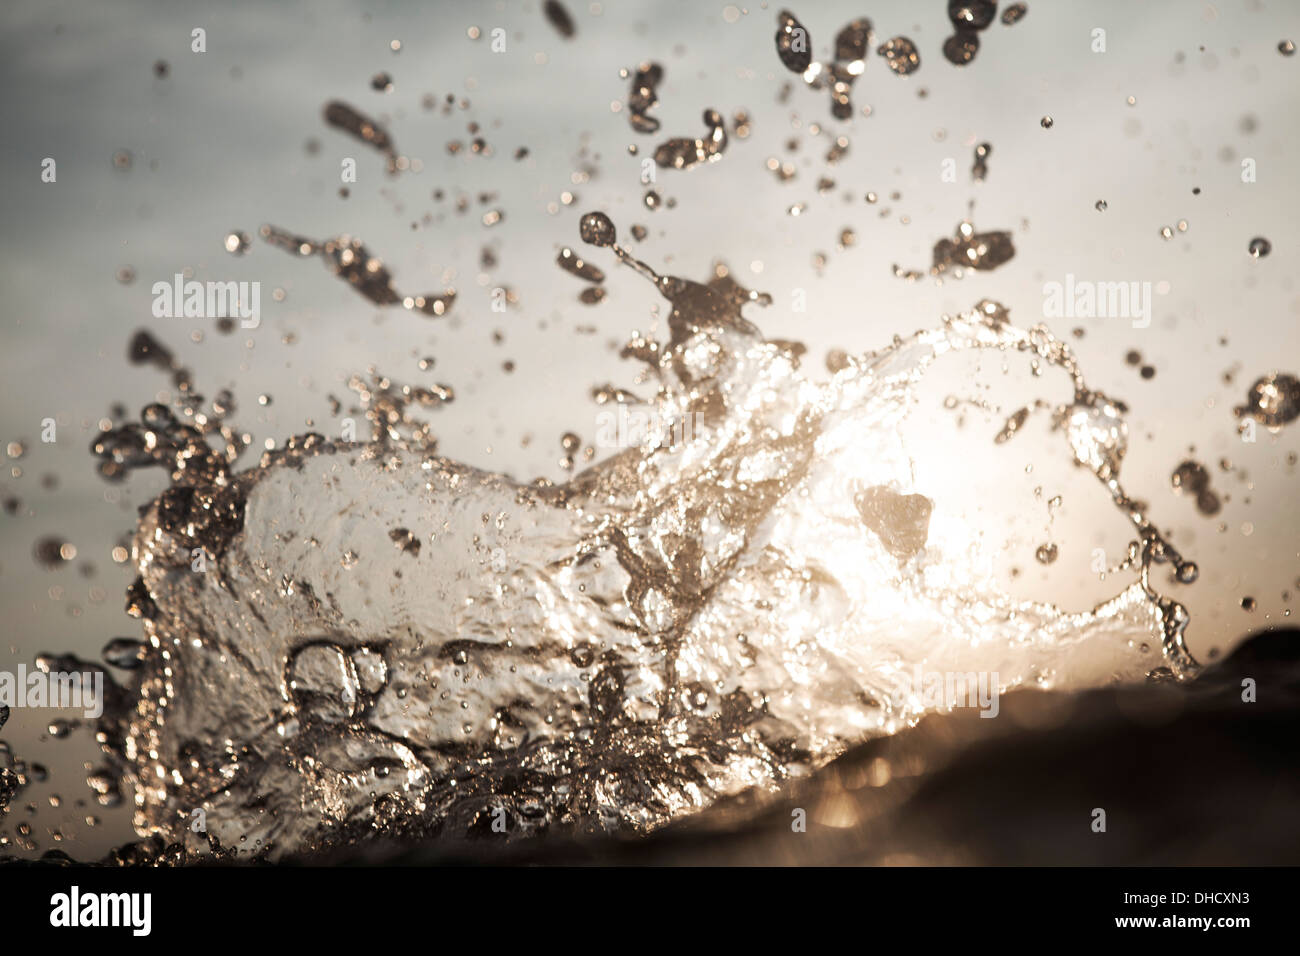 Croatia, Mediterranean Sea, ocean, water splash - Stock Image